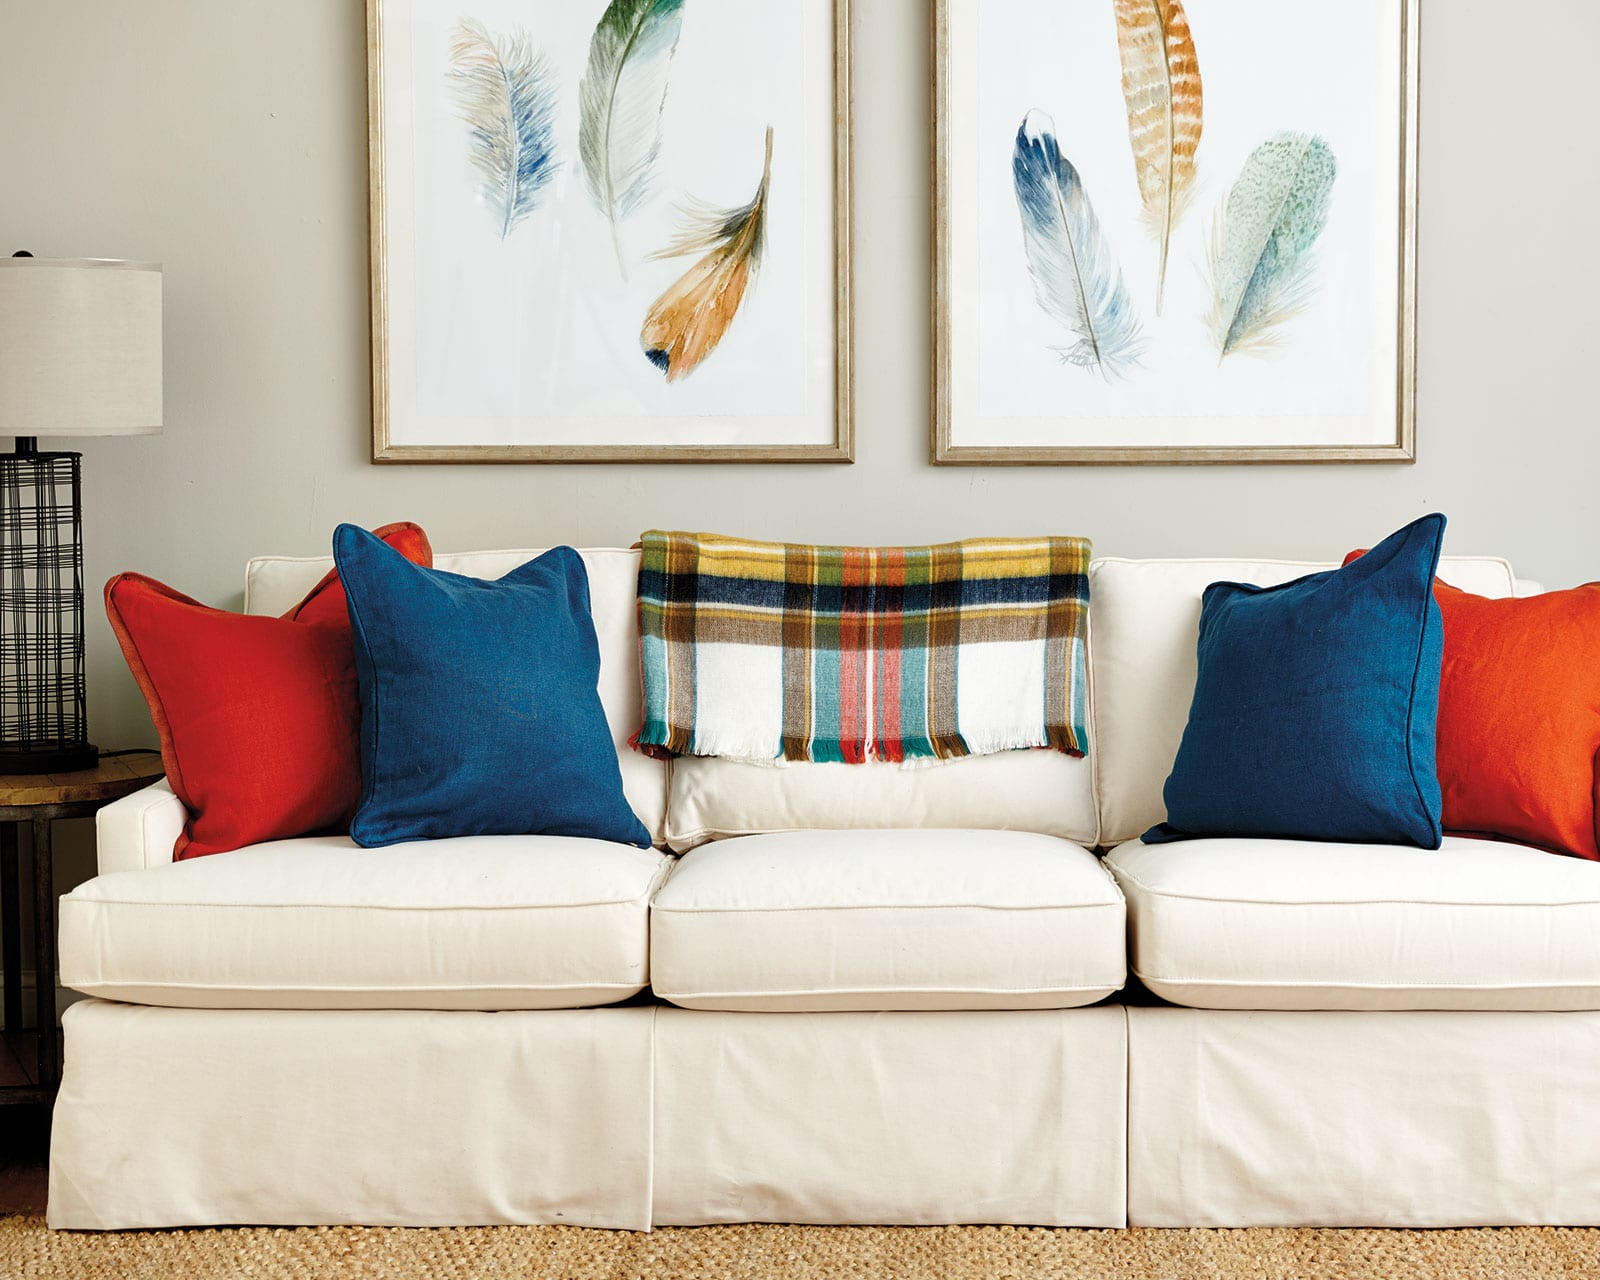 Brown Couch Pillow Ideas Guide To Choosing Throw Pillows How To Decorate